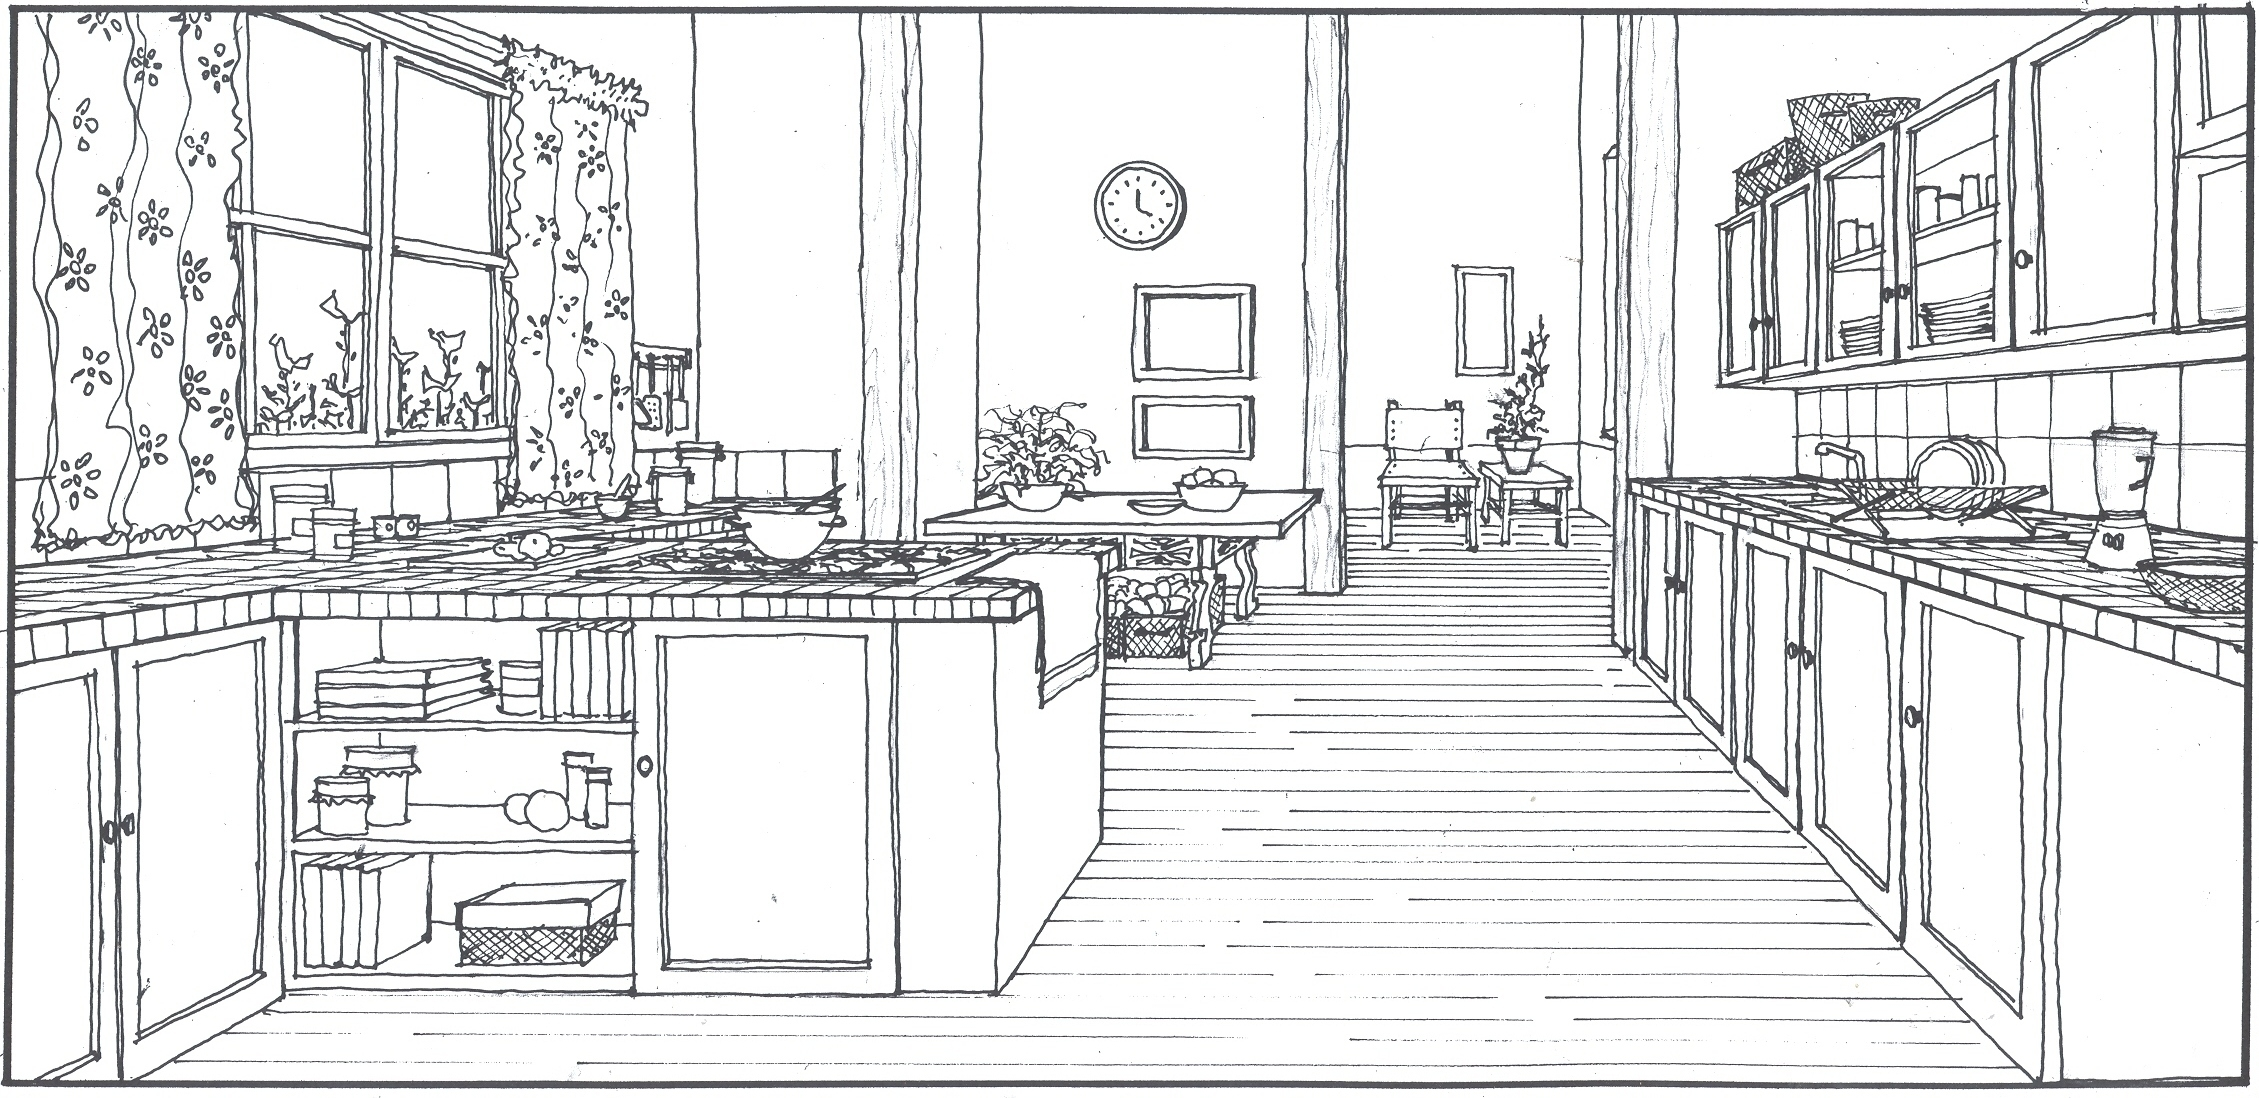 Kitchen Sketch By Arquitectcardesigns On Deviantart